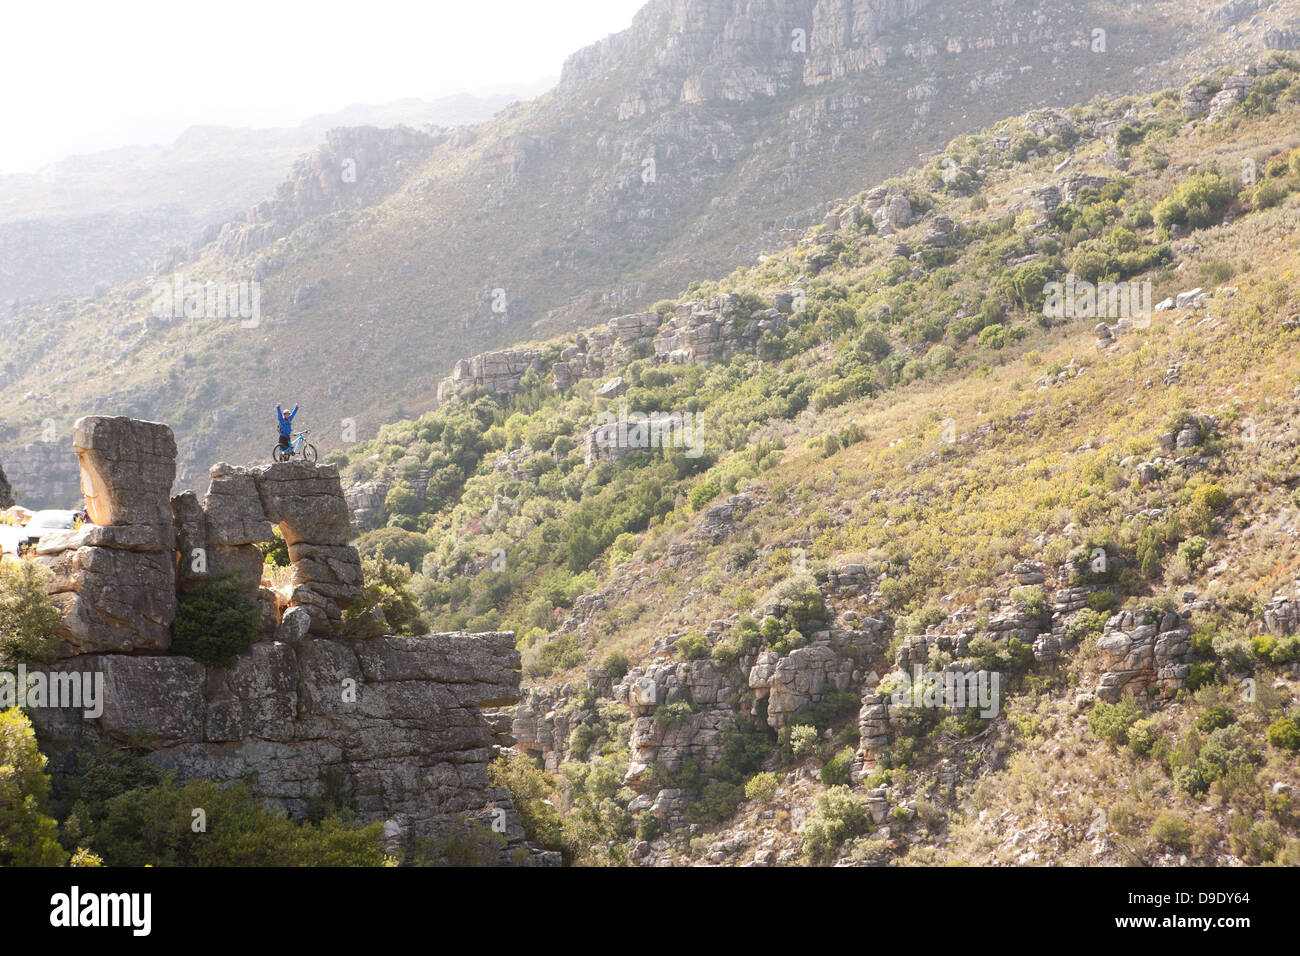 Distant view of young man with mountain bike on rock - Stock Image